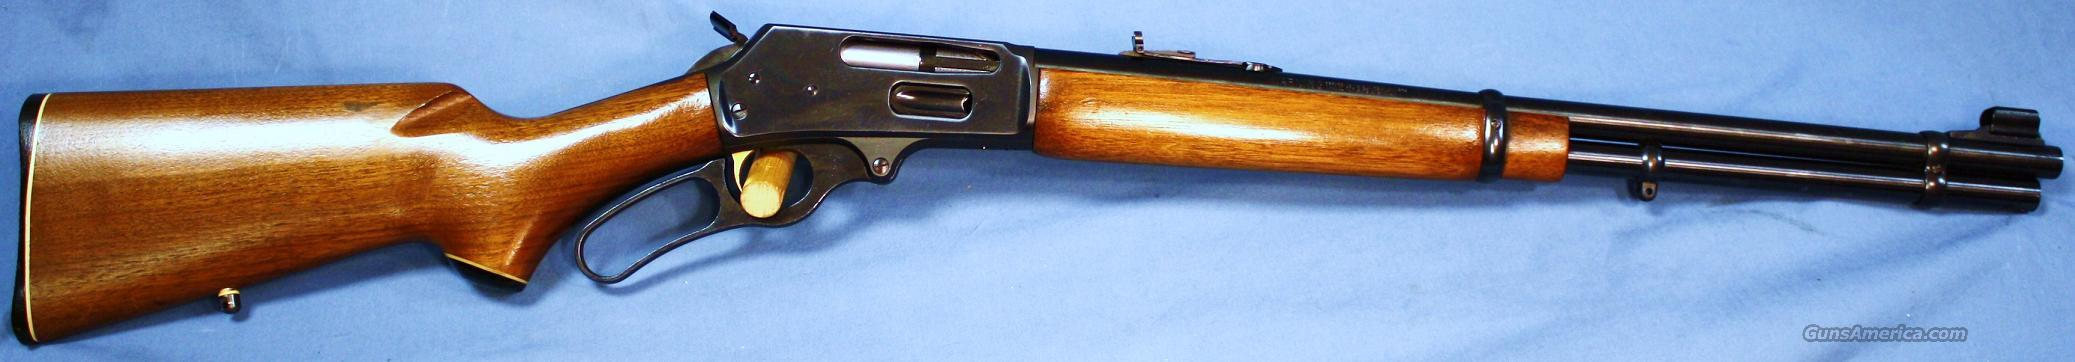 Marlin Model 336 Lever Action Rifle .30-30 Win Made 1981 in North Haven, CT.  Guns > Rifles > Marlin Rifles > Modern > Lever Action